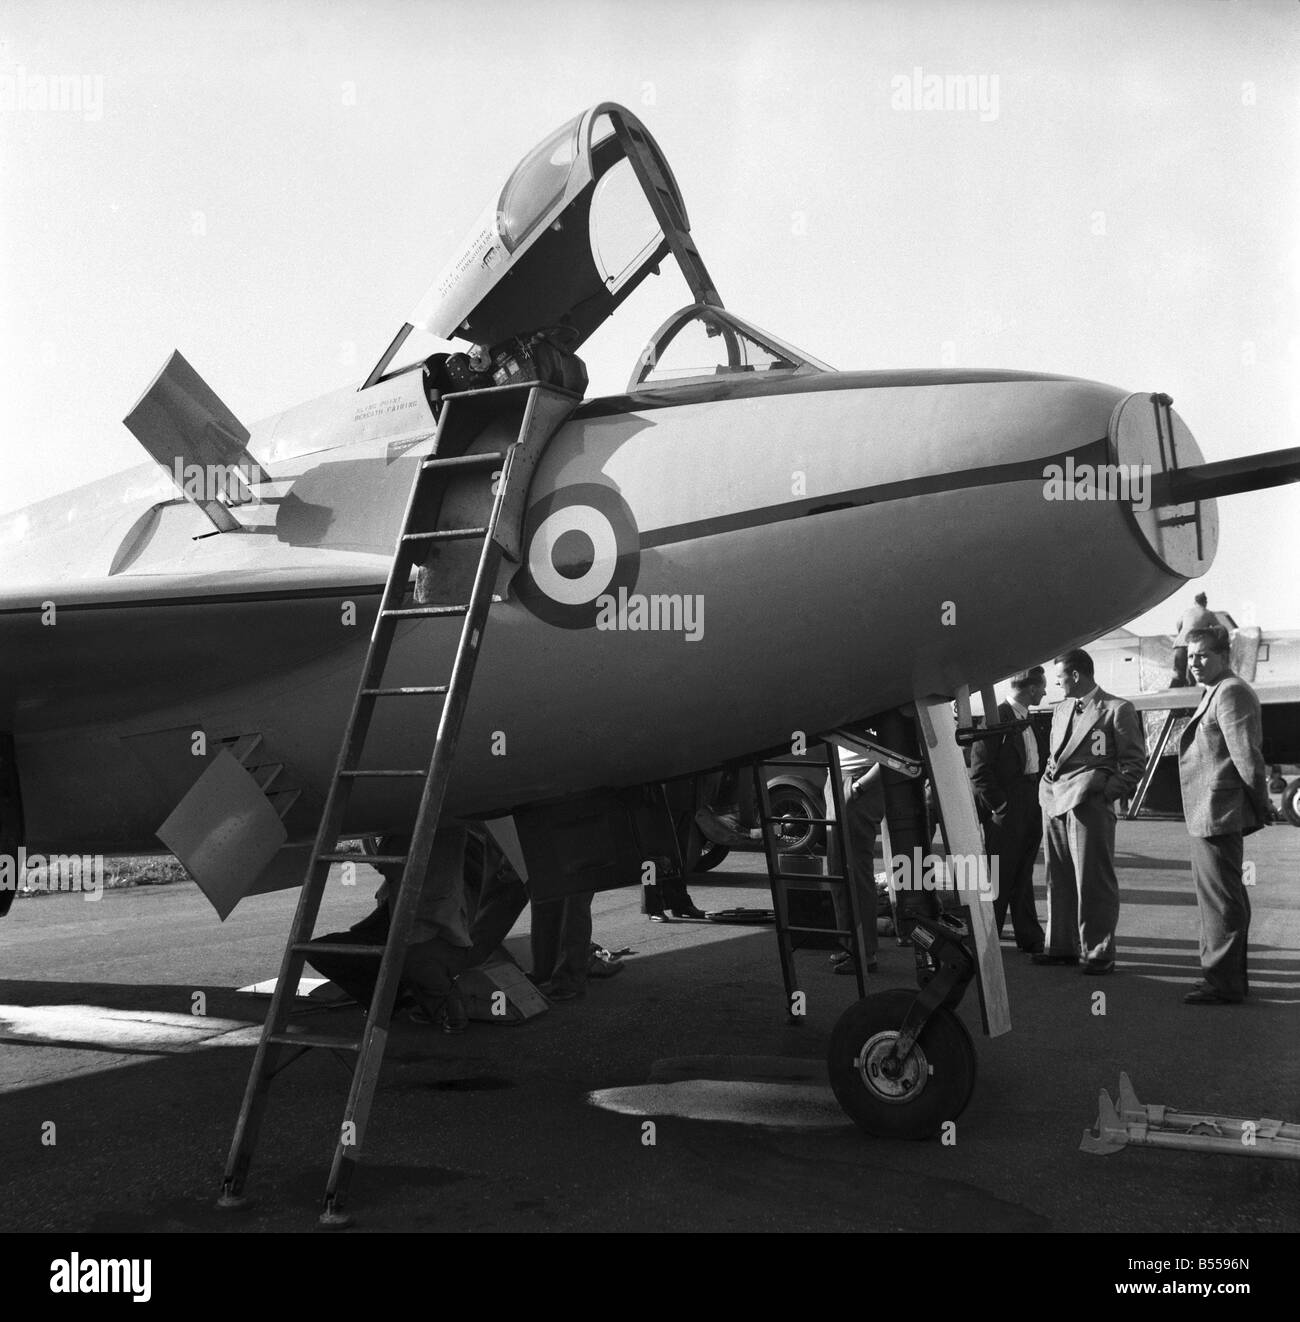 Farnborough Airshow 1953. The shorts SB5 research plane seen here parked on the apron. September 1953 D5501-002 - Stock Image